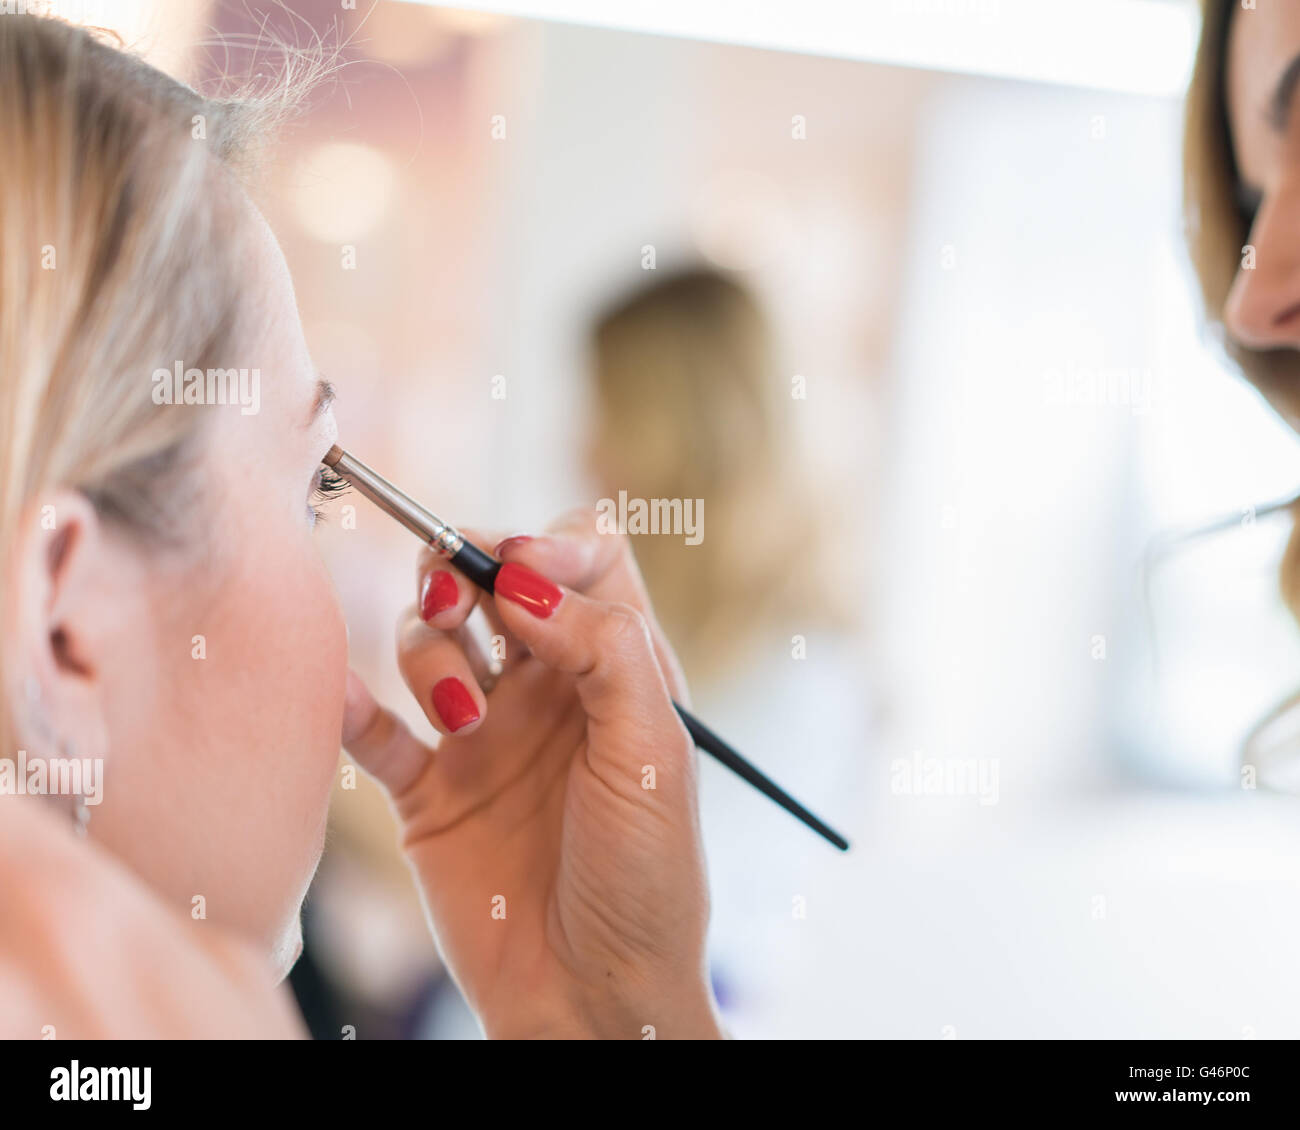 Applying eyeshadow on eyelids in a beauty salon. - Stock Image